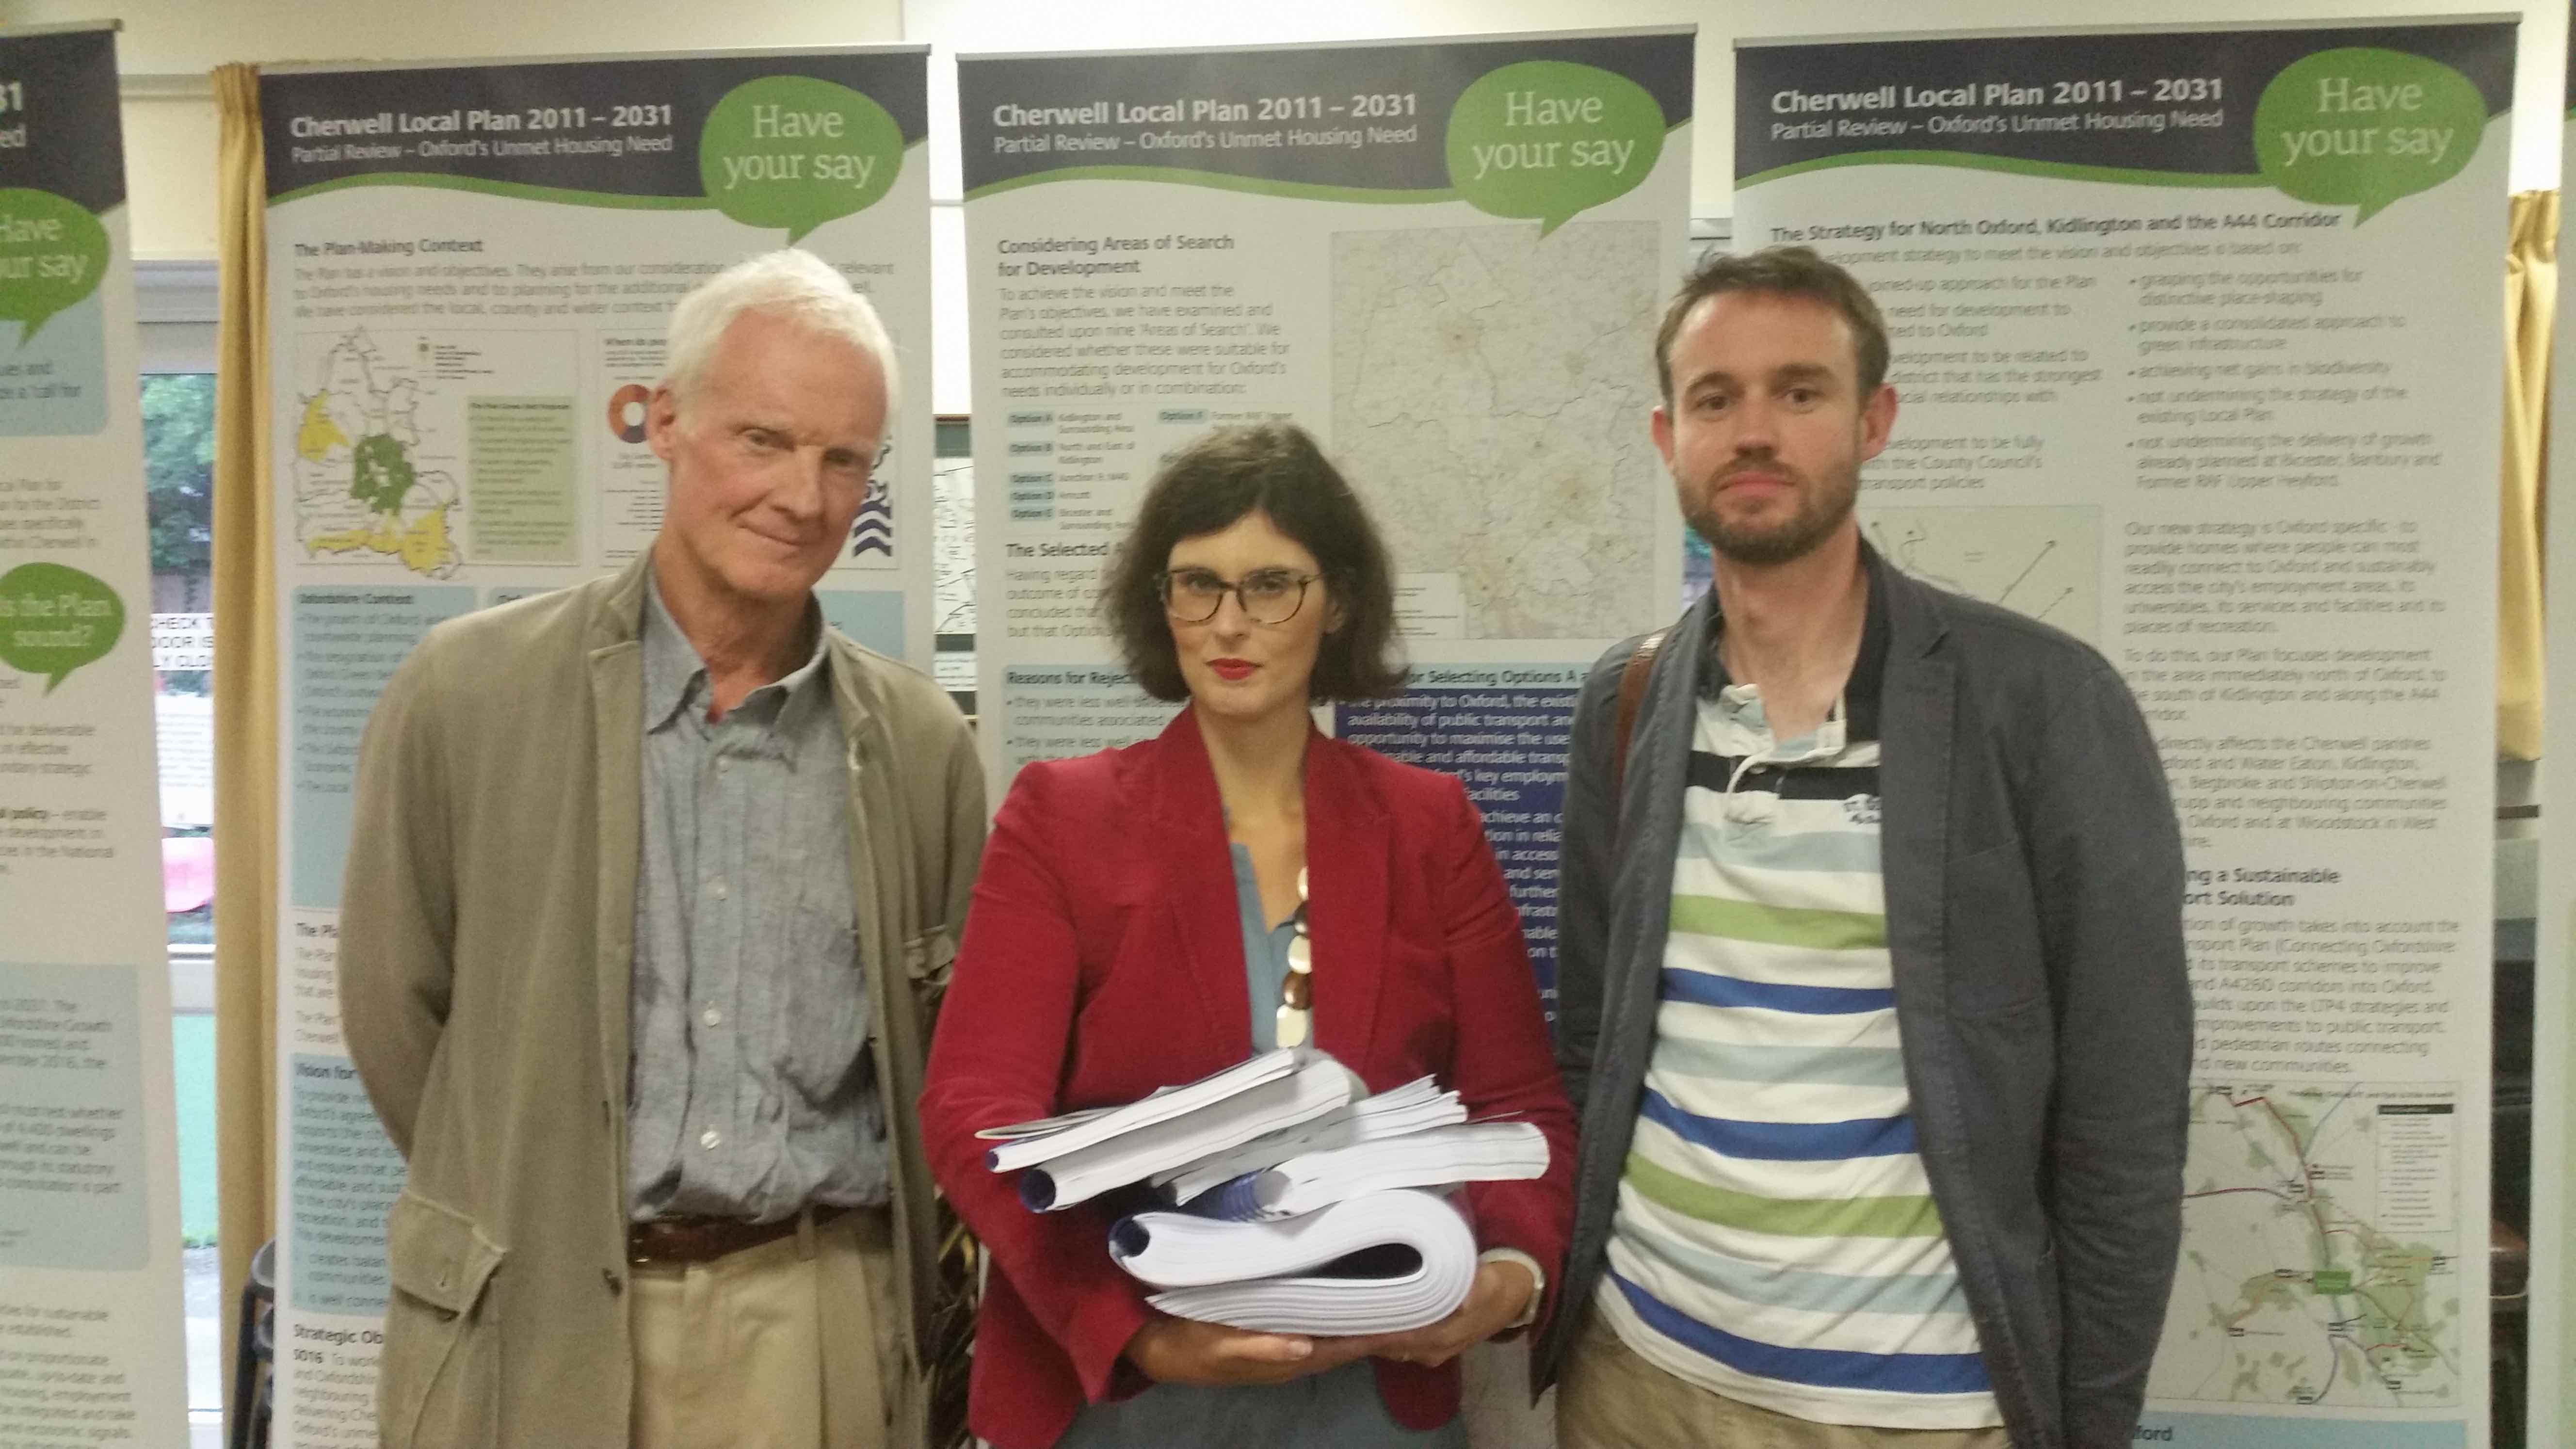 Win for local campaigners - Cherwell housing plan consultation extended